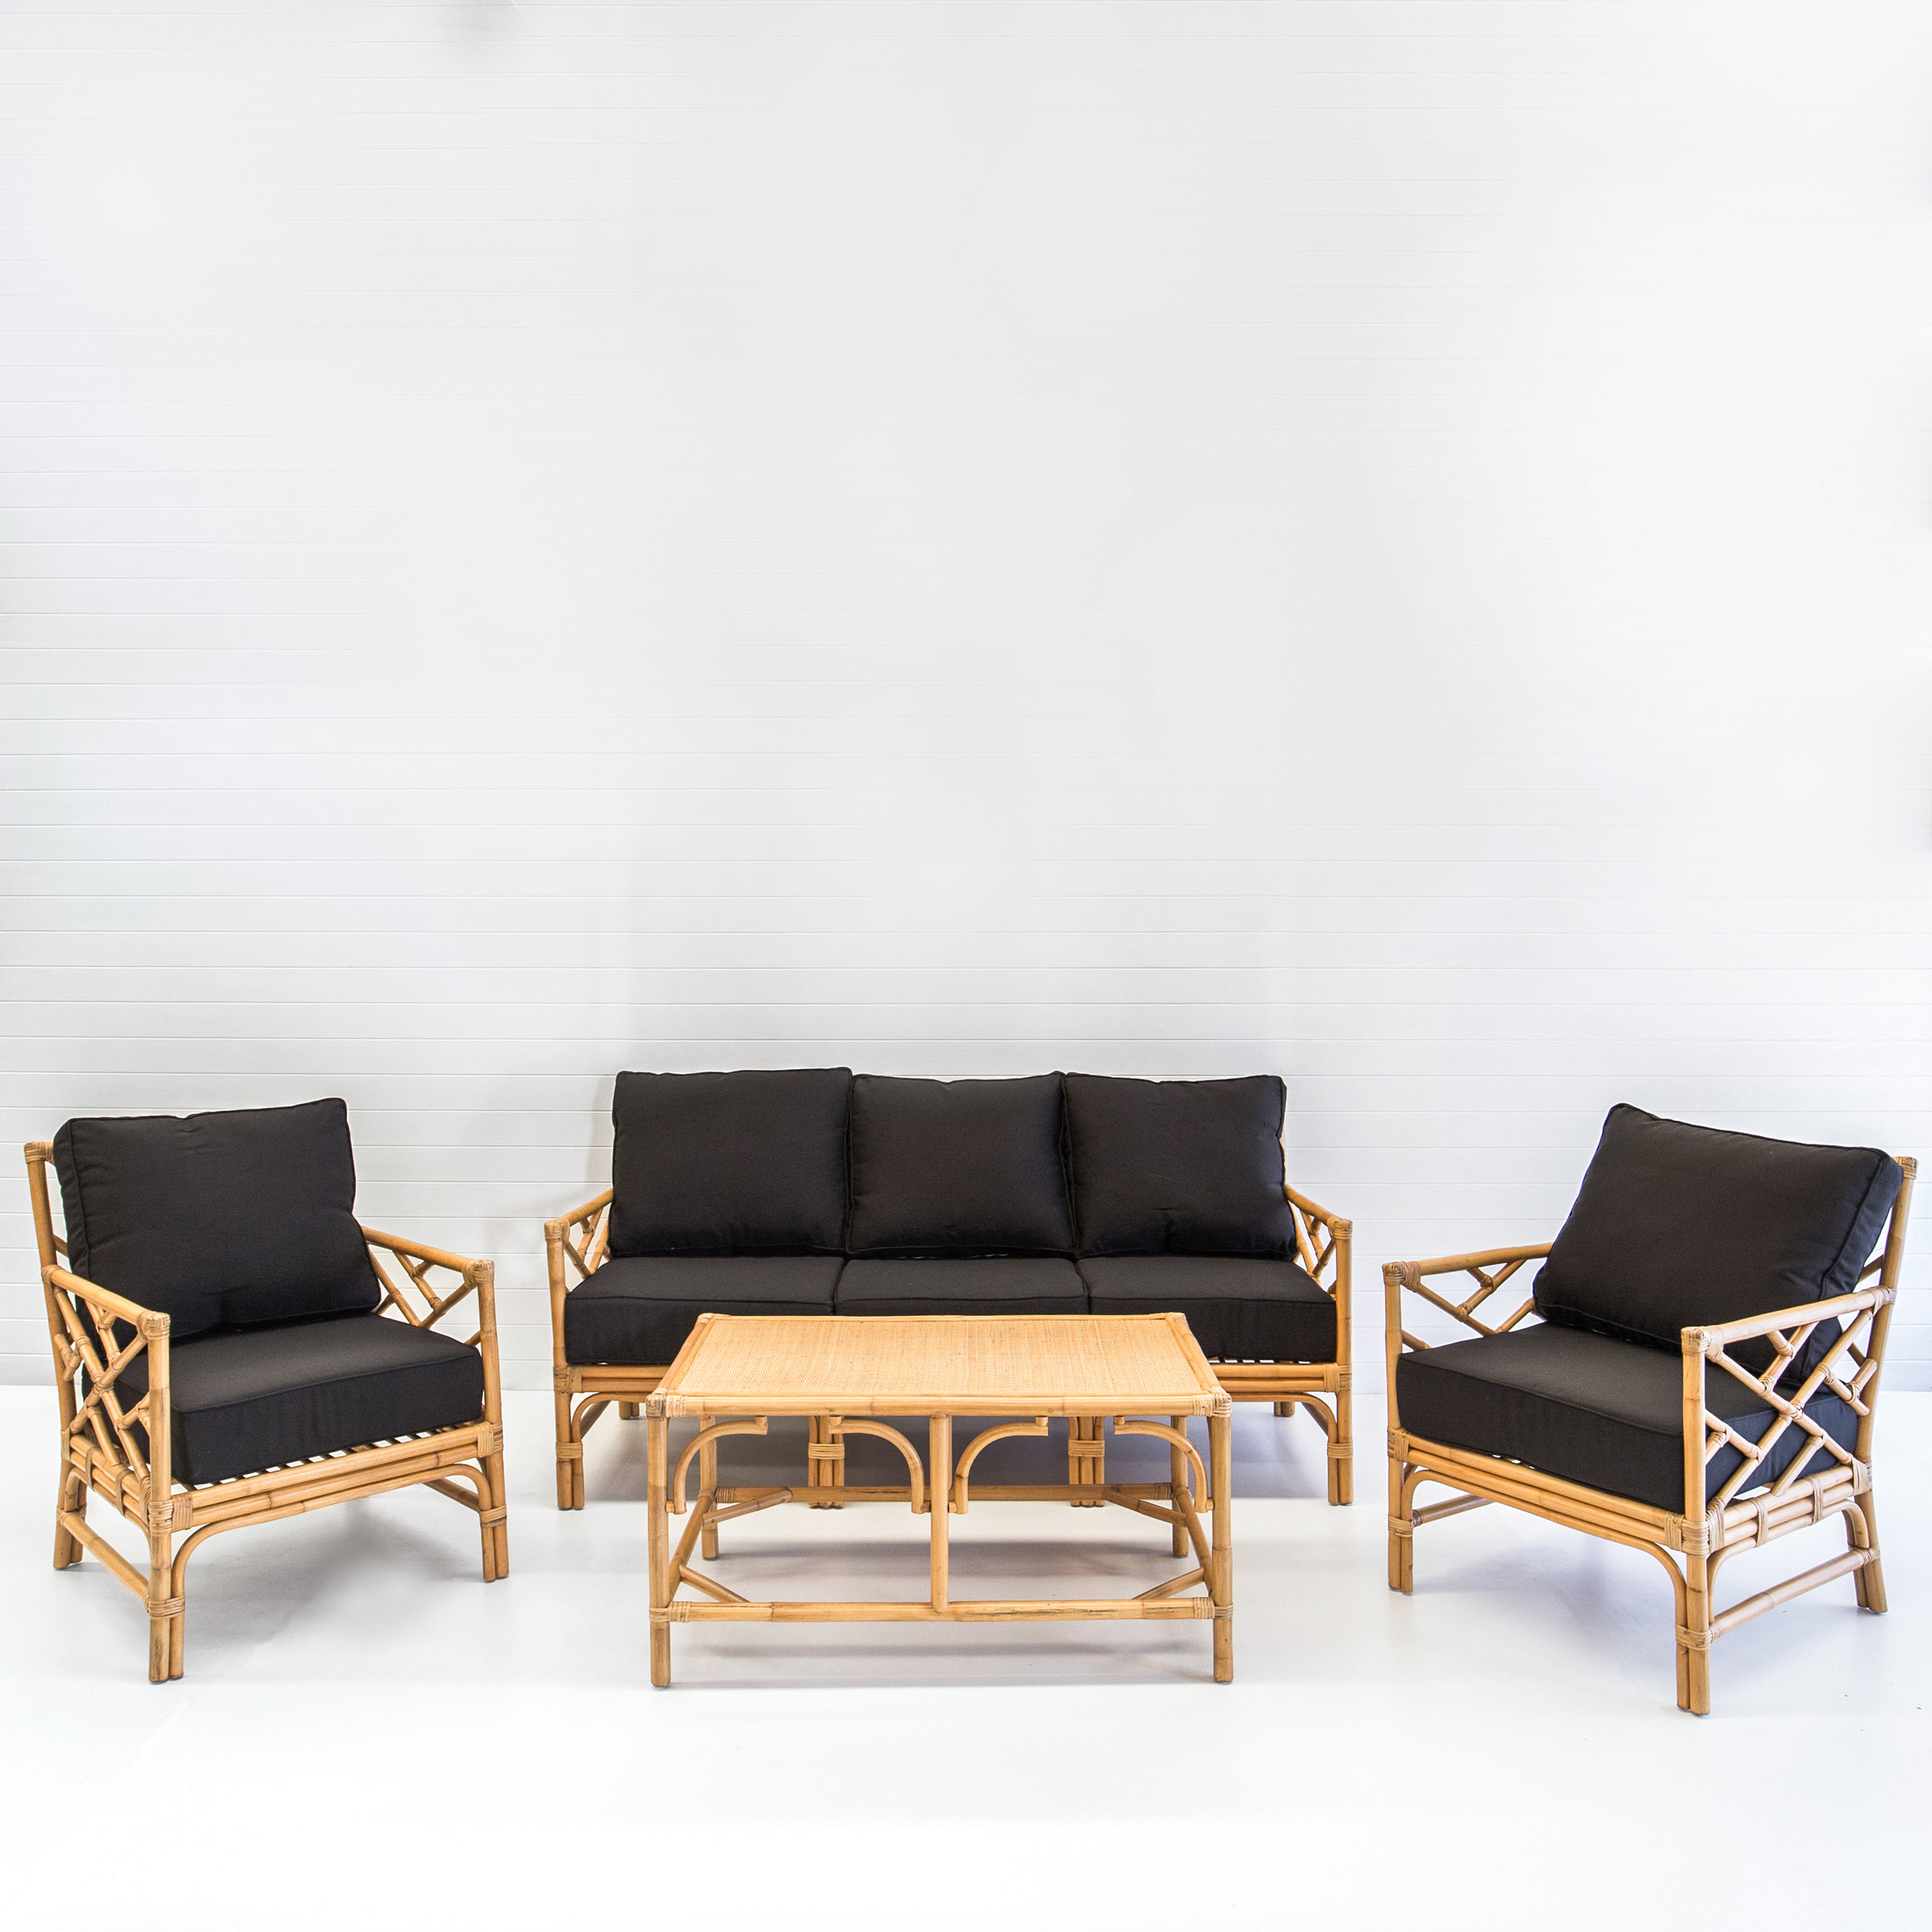 HAMPTONS NATURAL SOFA PACKAGE WITH BLACK CUSHIONS